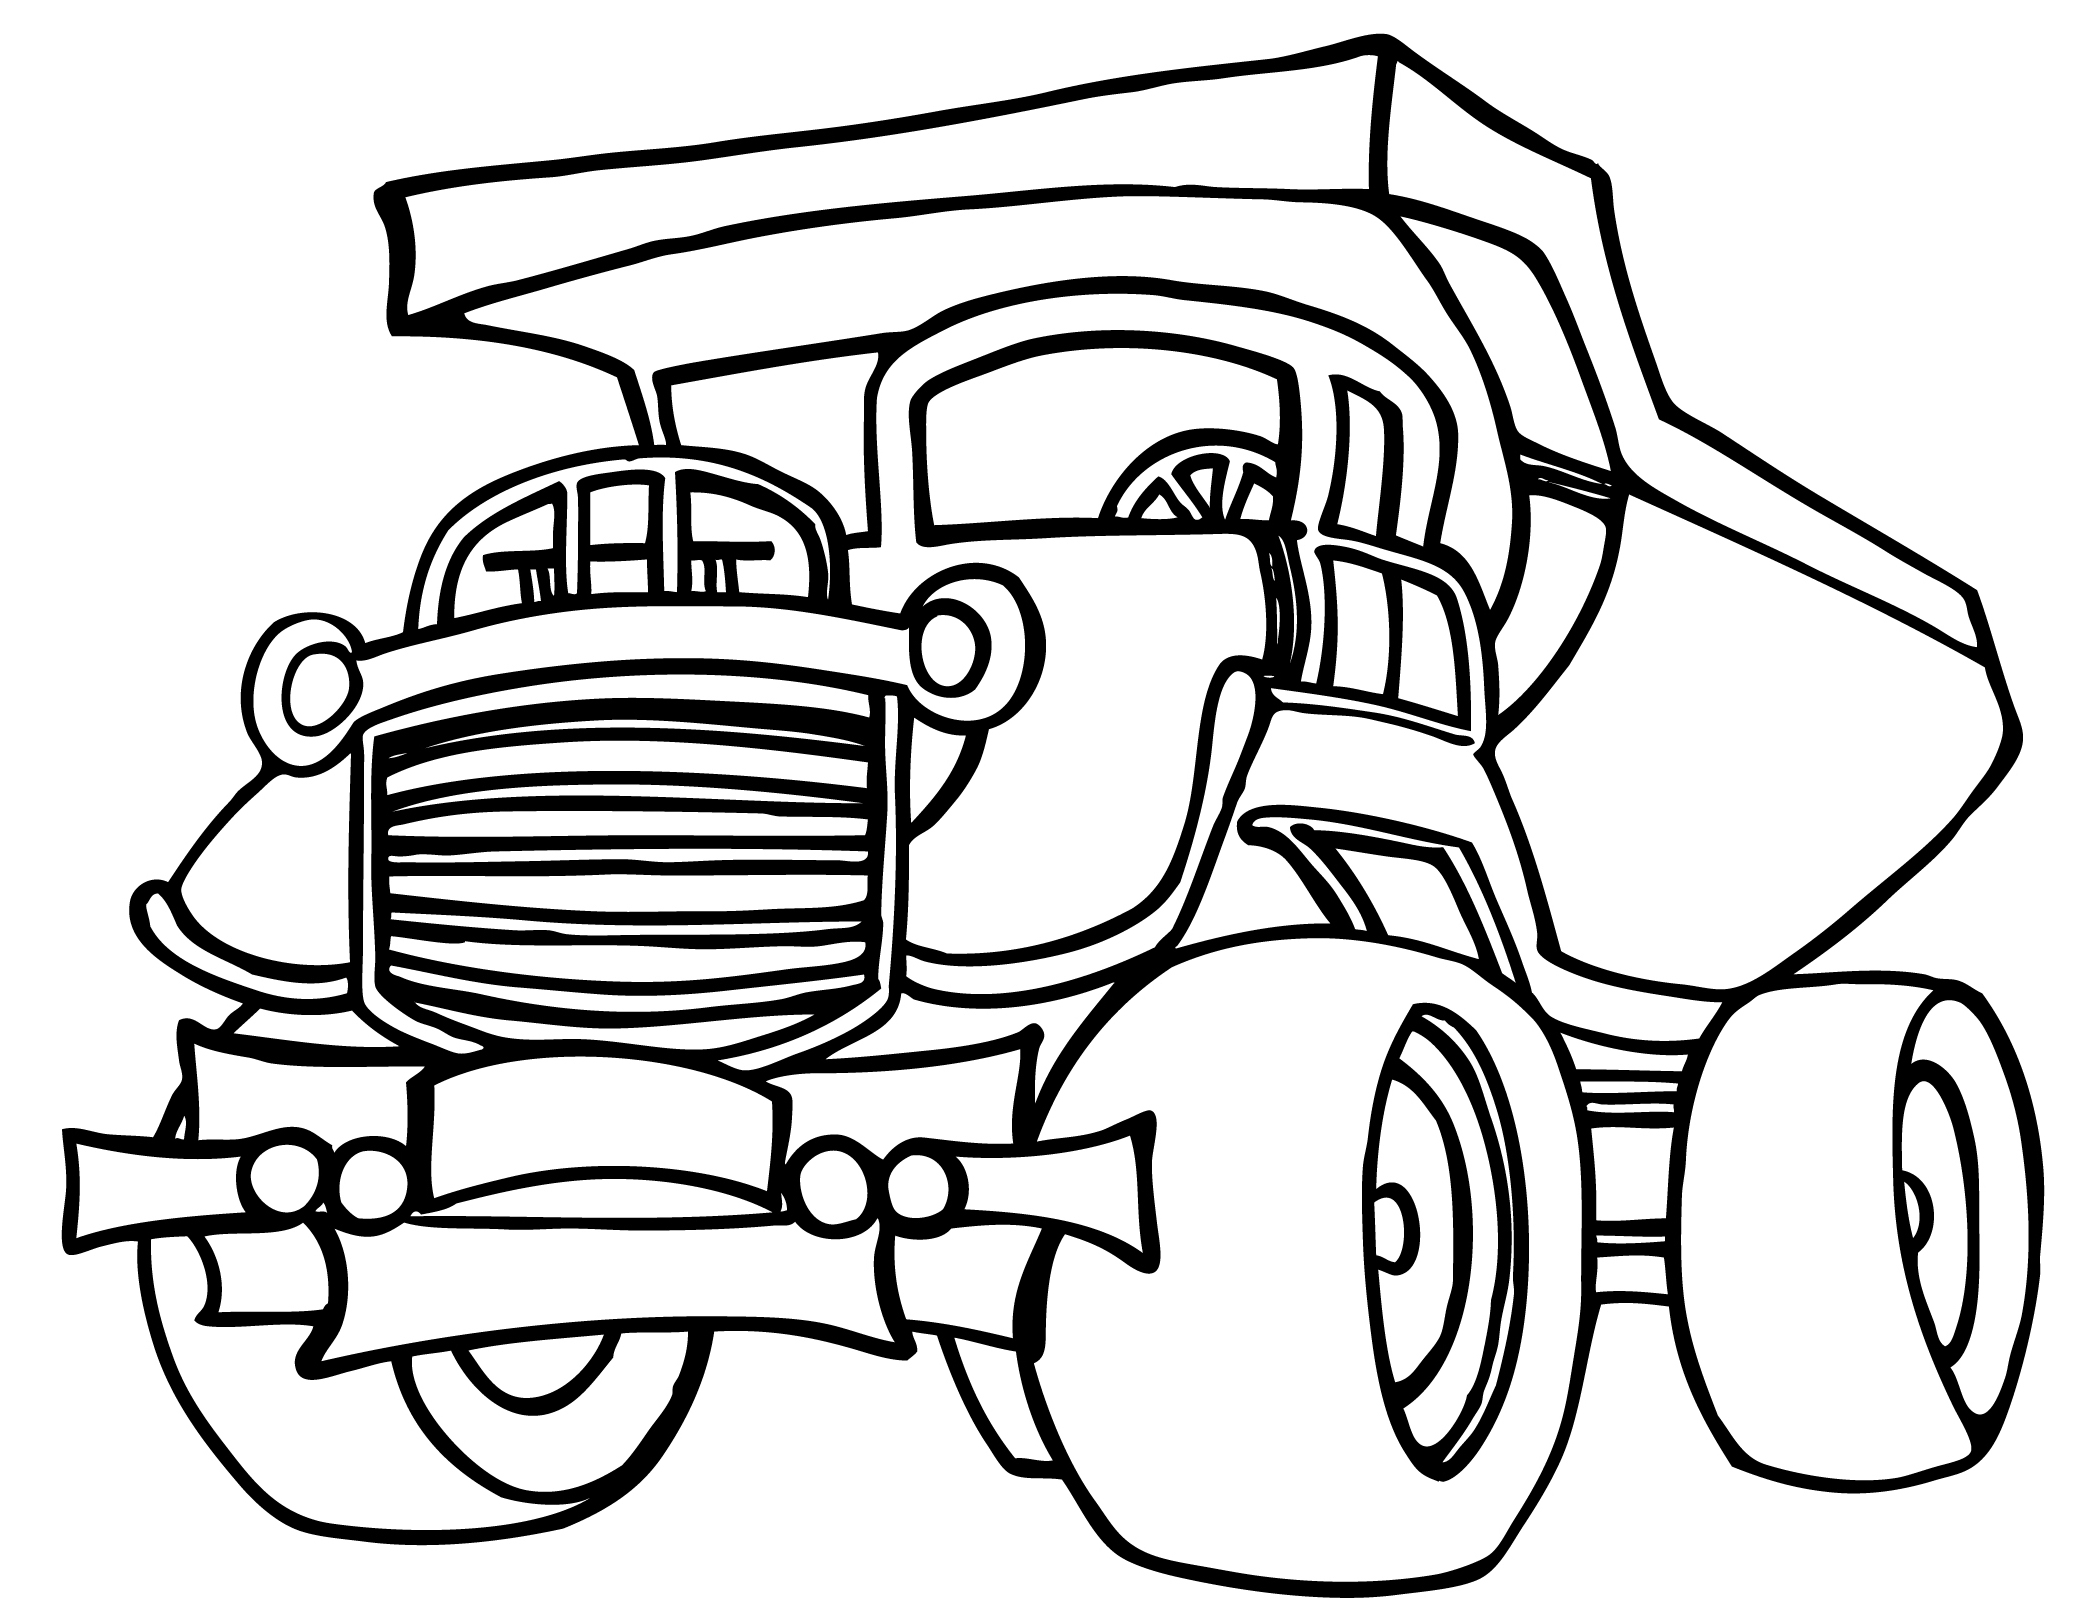 dump truck coloring pages online - photo#7